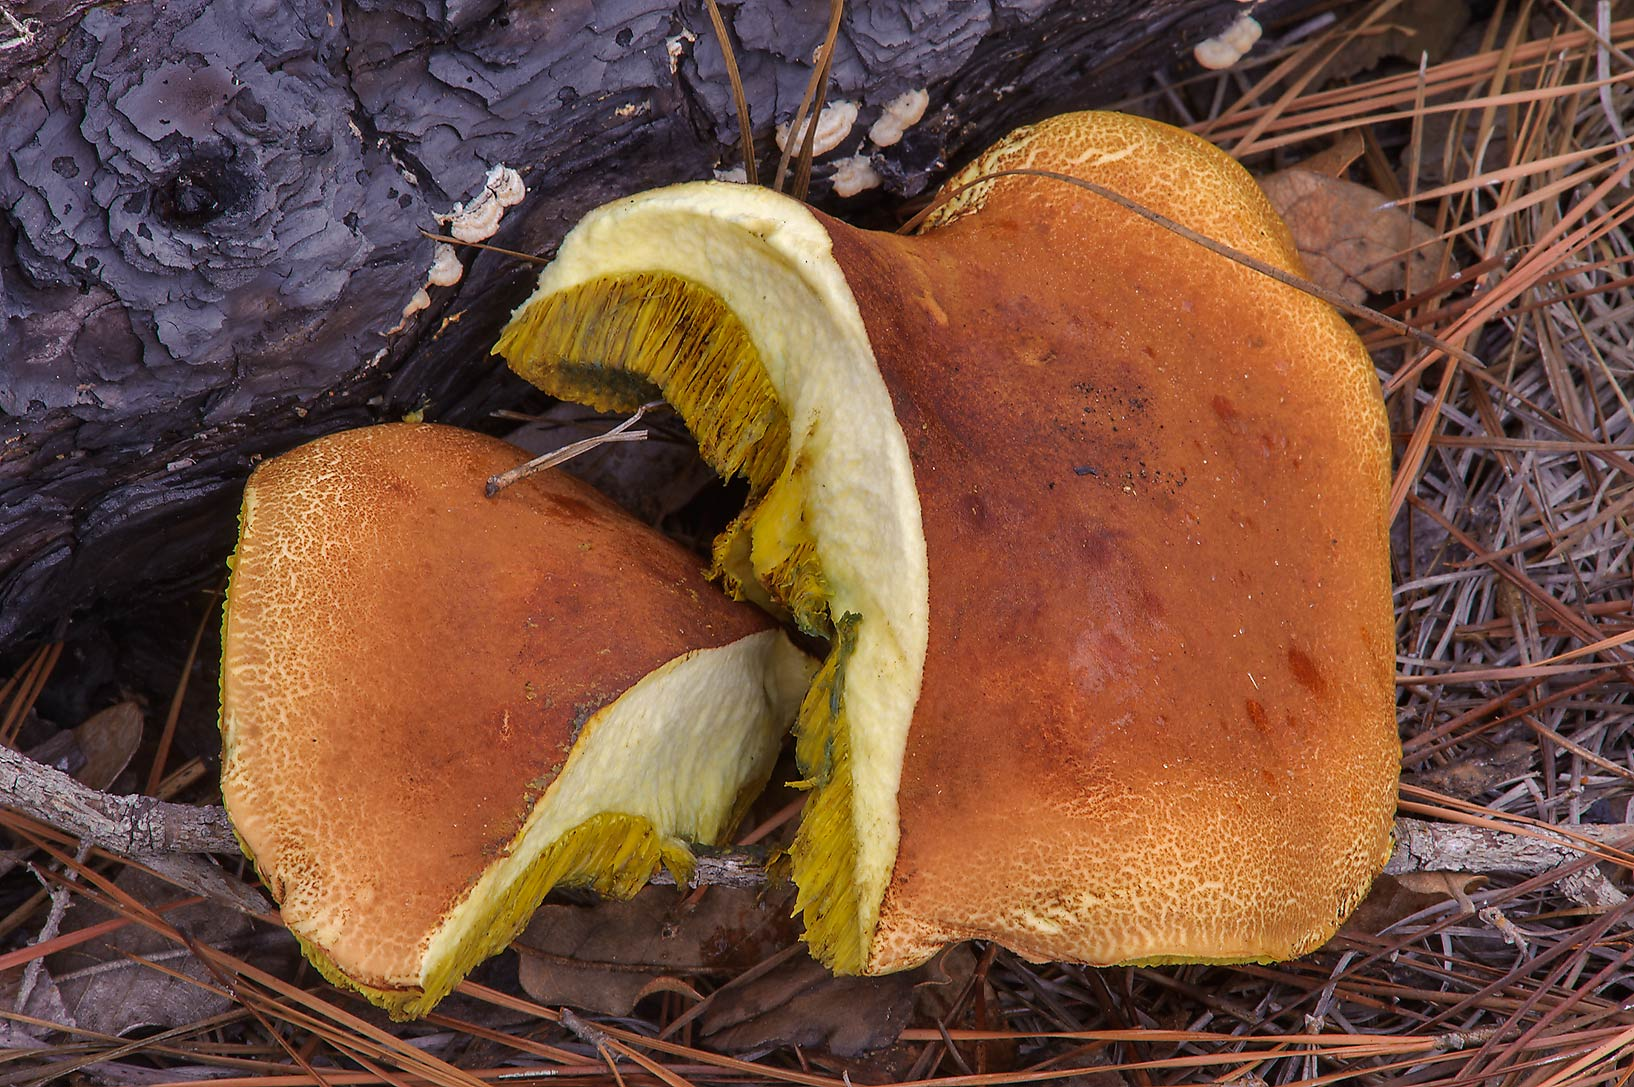 Boletus mushroom on Lost Pines Trail in Bastrop State Park. Bastrop, Texas